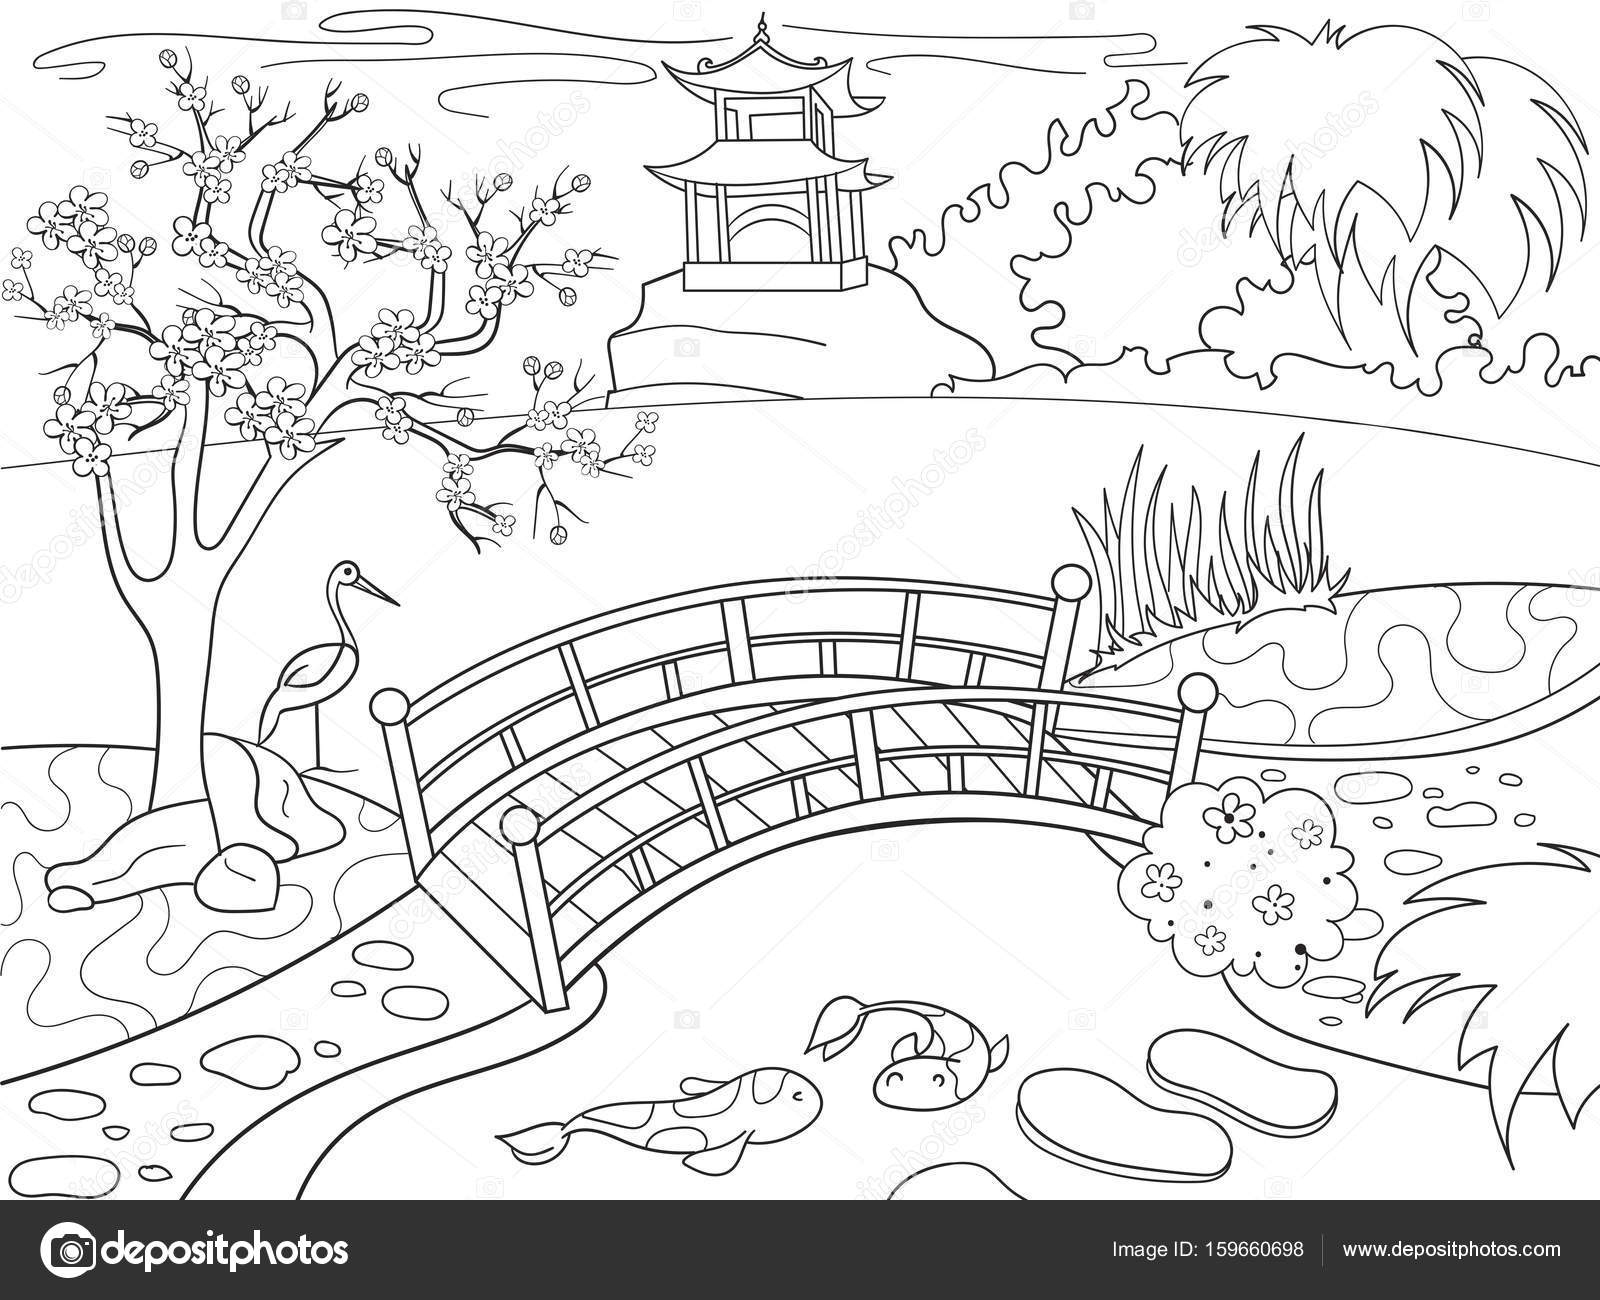 Nature Of Japan Coloring Book For Children Cartoon Japanese